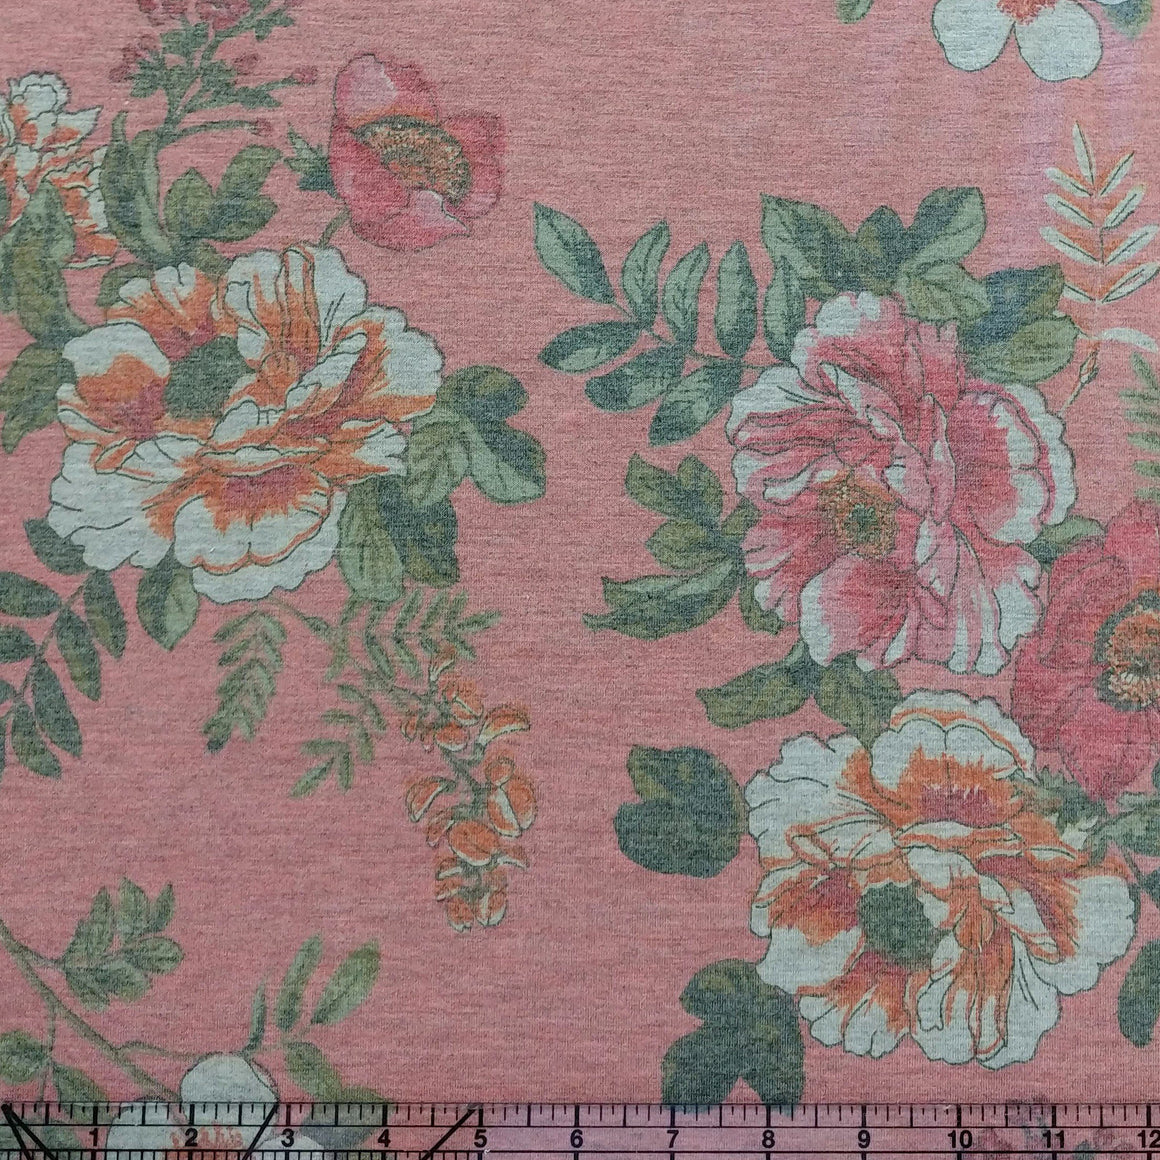 Salmon Orange Mustard and Olive Floral French Terry Knit Fabric, 1 Yard - Raspberry Creek Fabrics